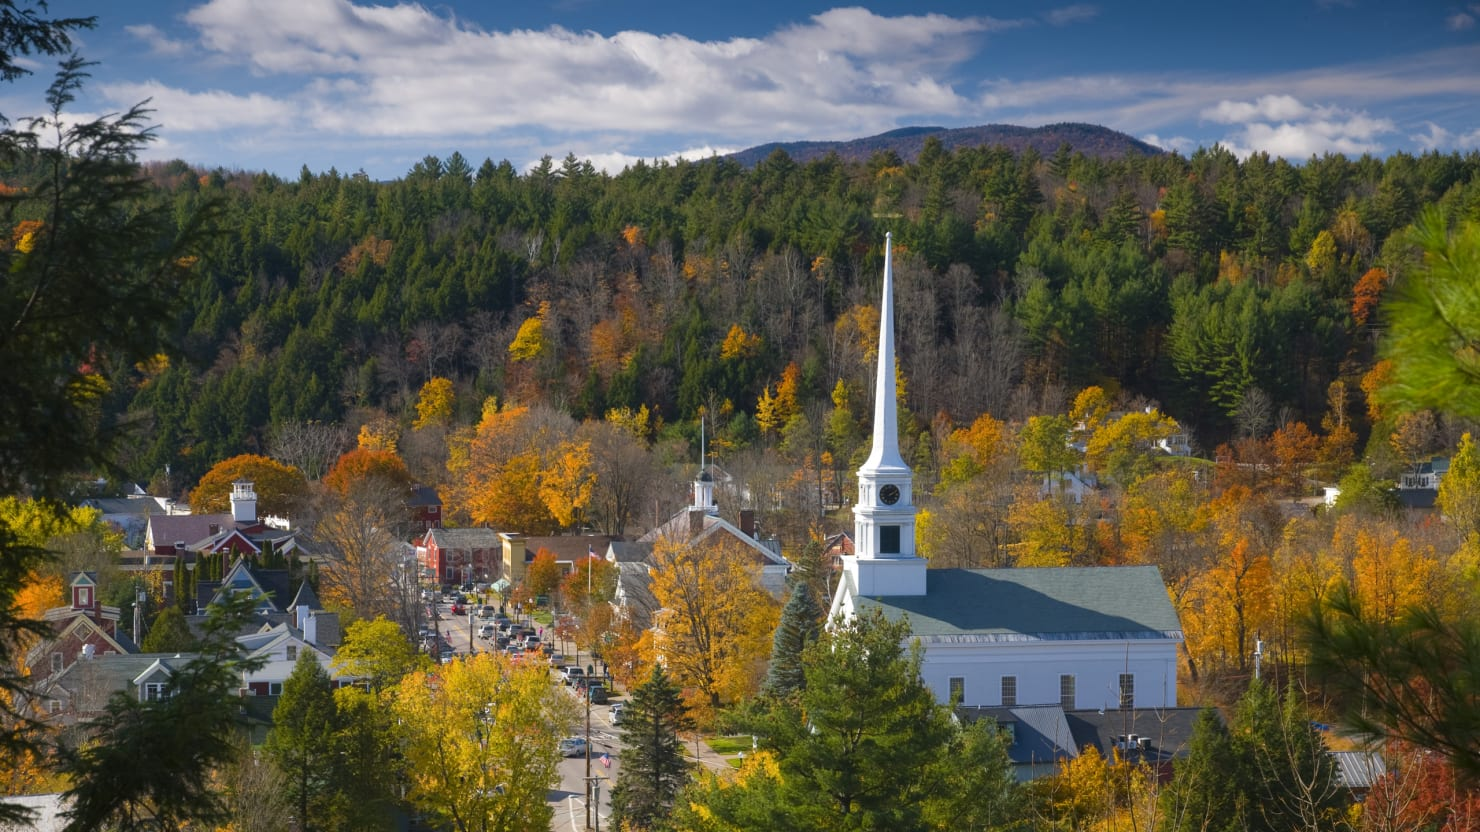 A Healthy Dose of Vermont: Soaking Up Fall in the Mountains of Stowe